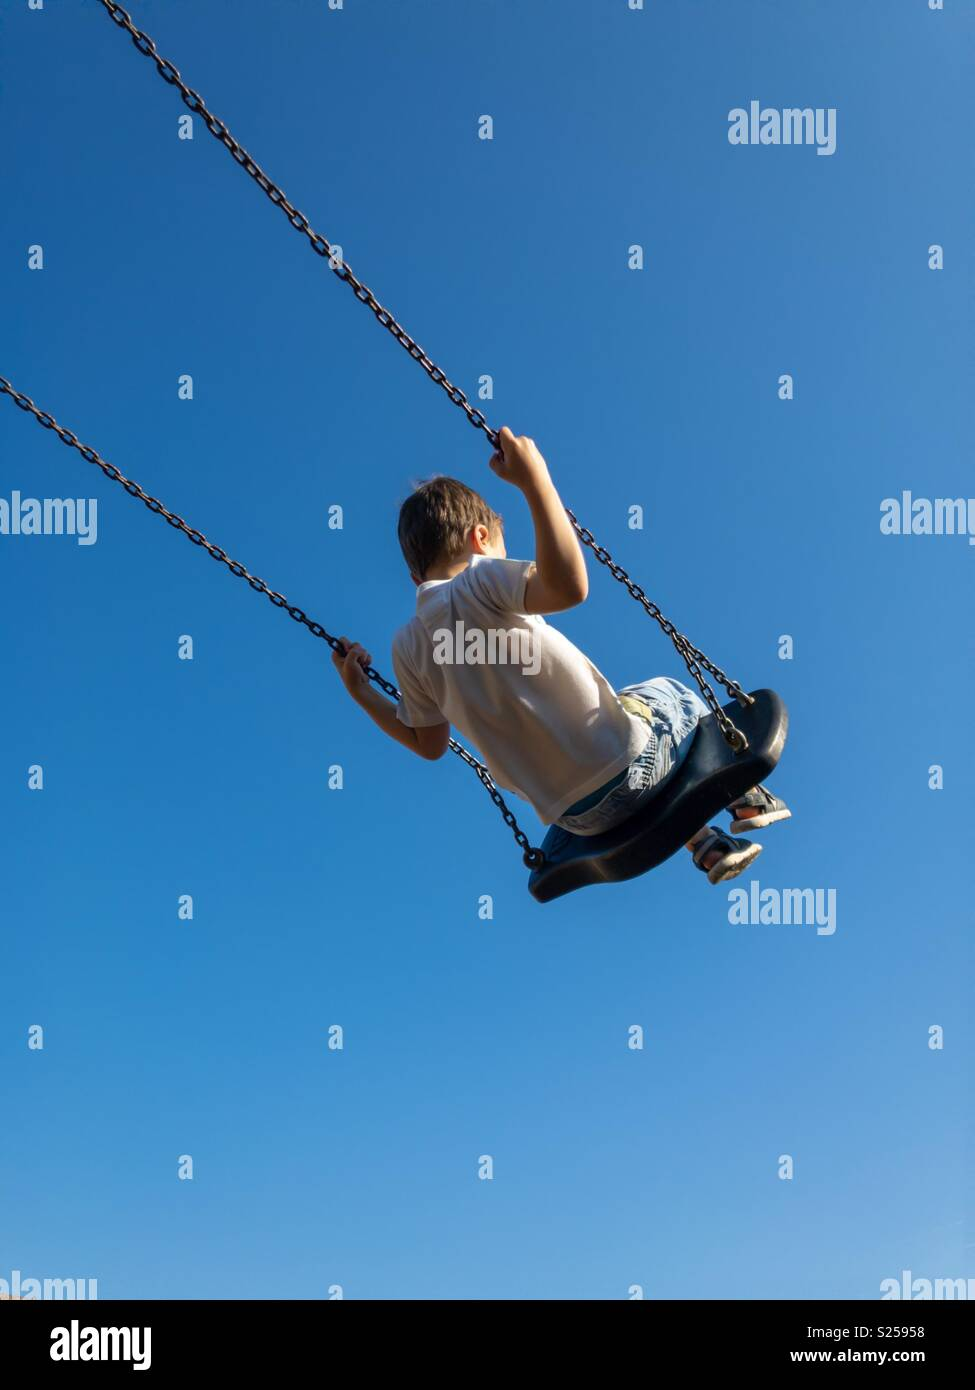 Boy flying high on a swing, childhood memories concept - Stock Image